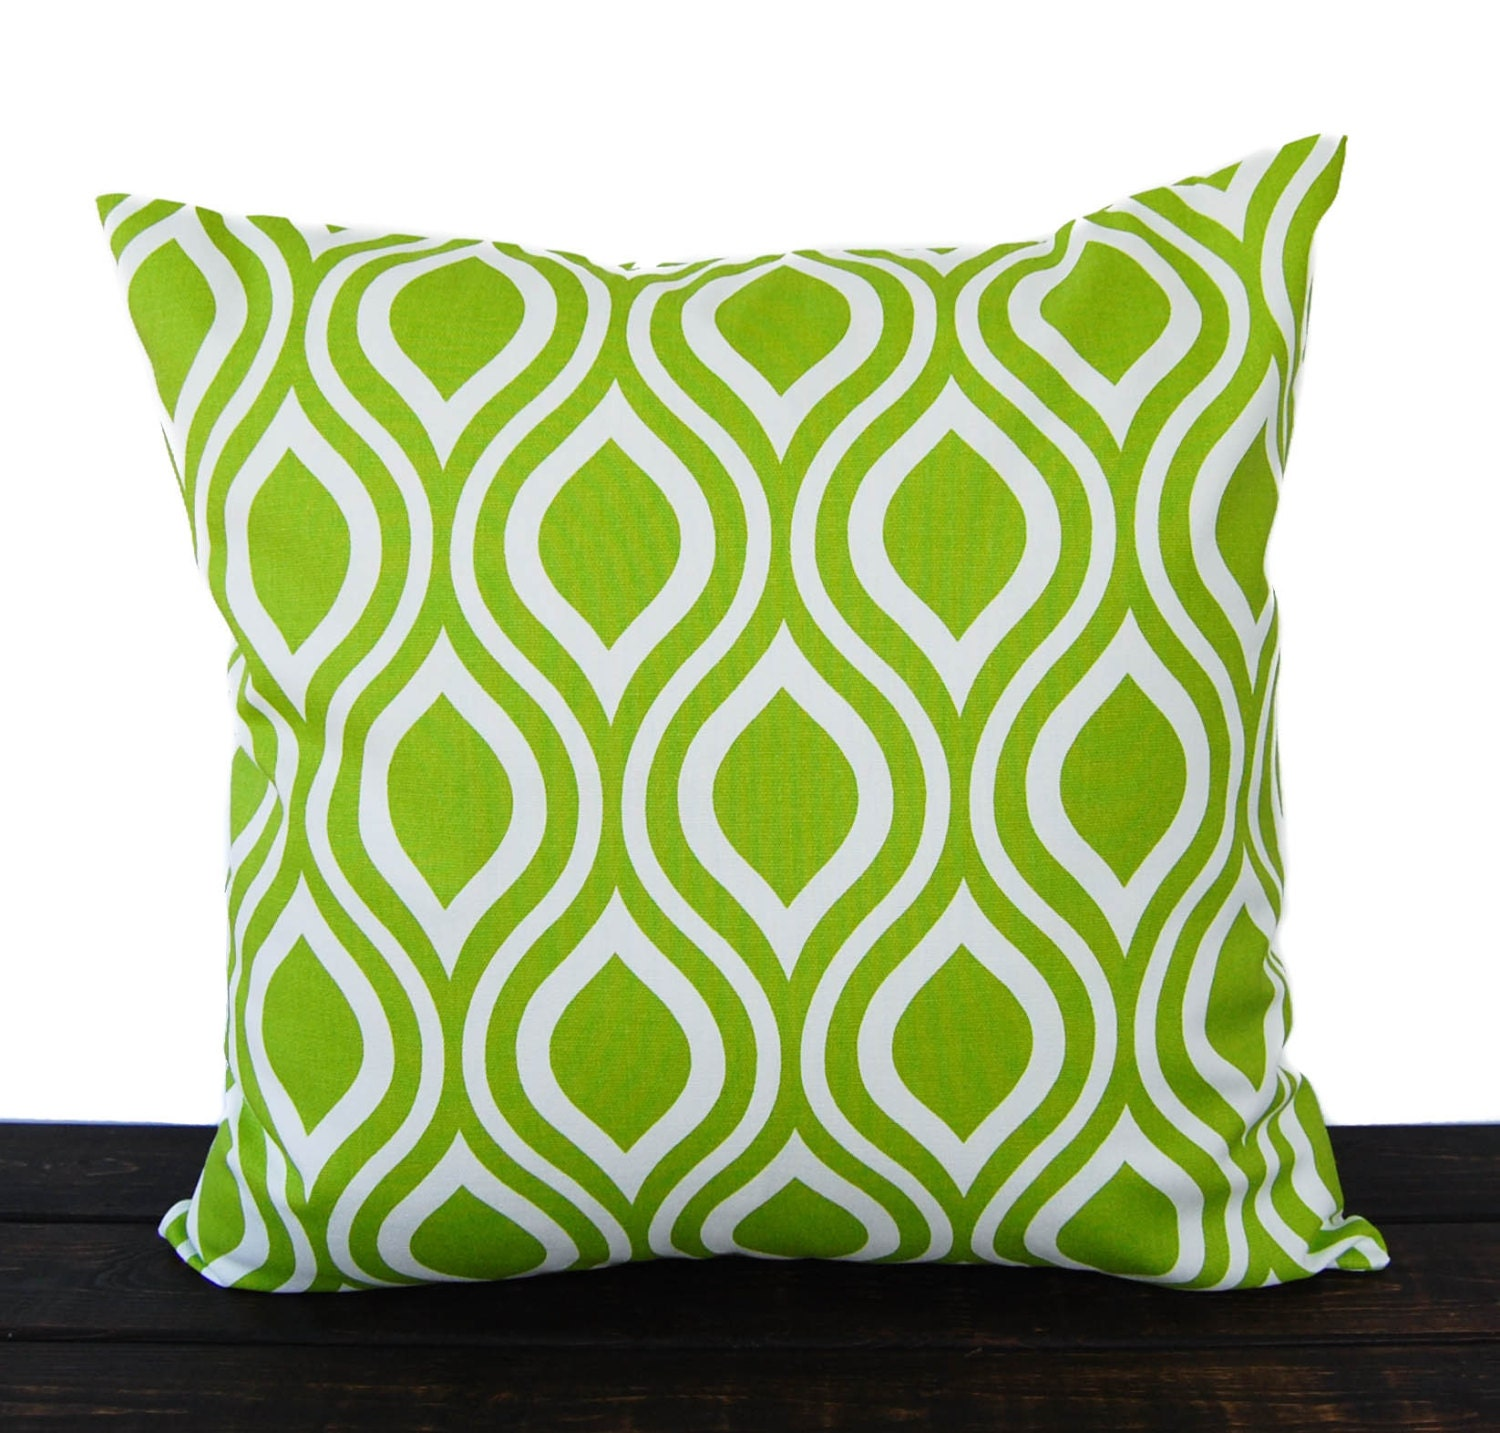 Decorative Pillows In Green : Throw pillow cover chartreuse lime green cushion cover pillow